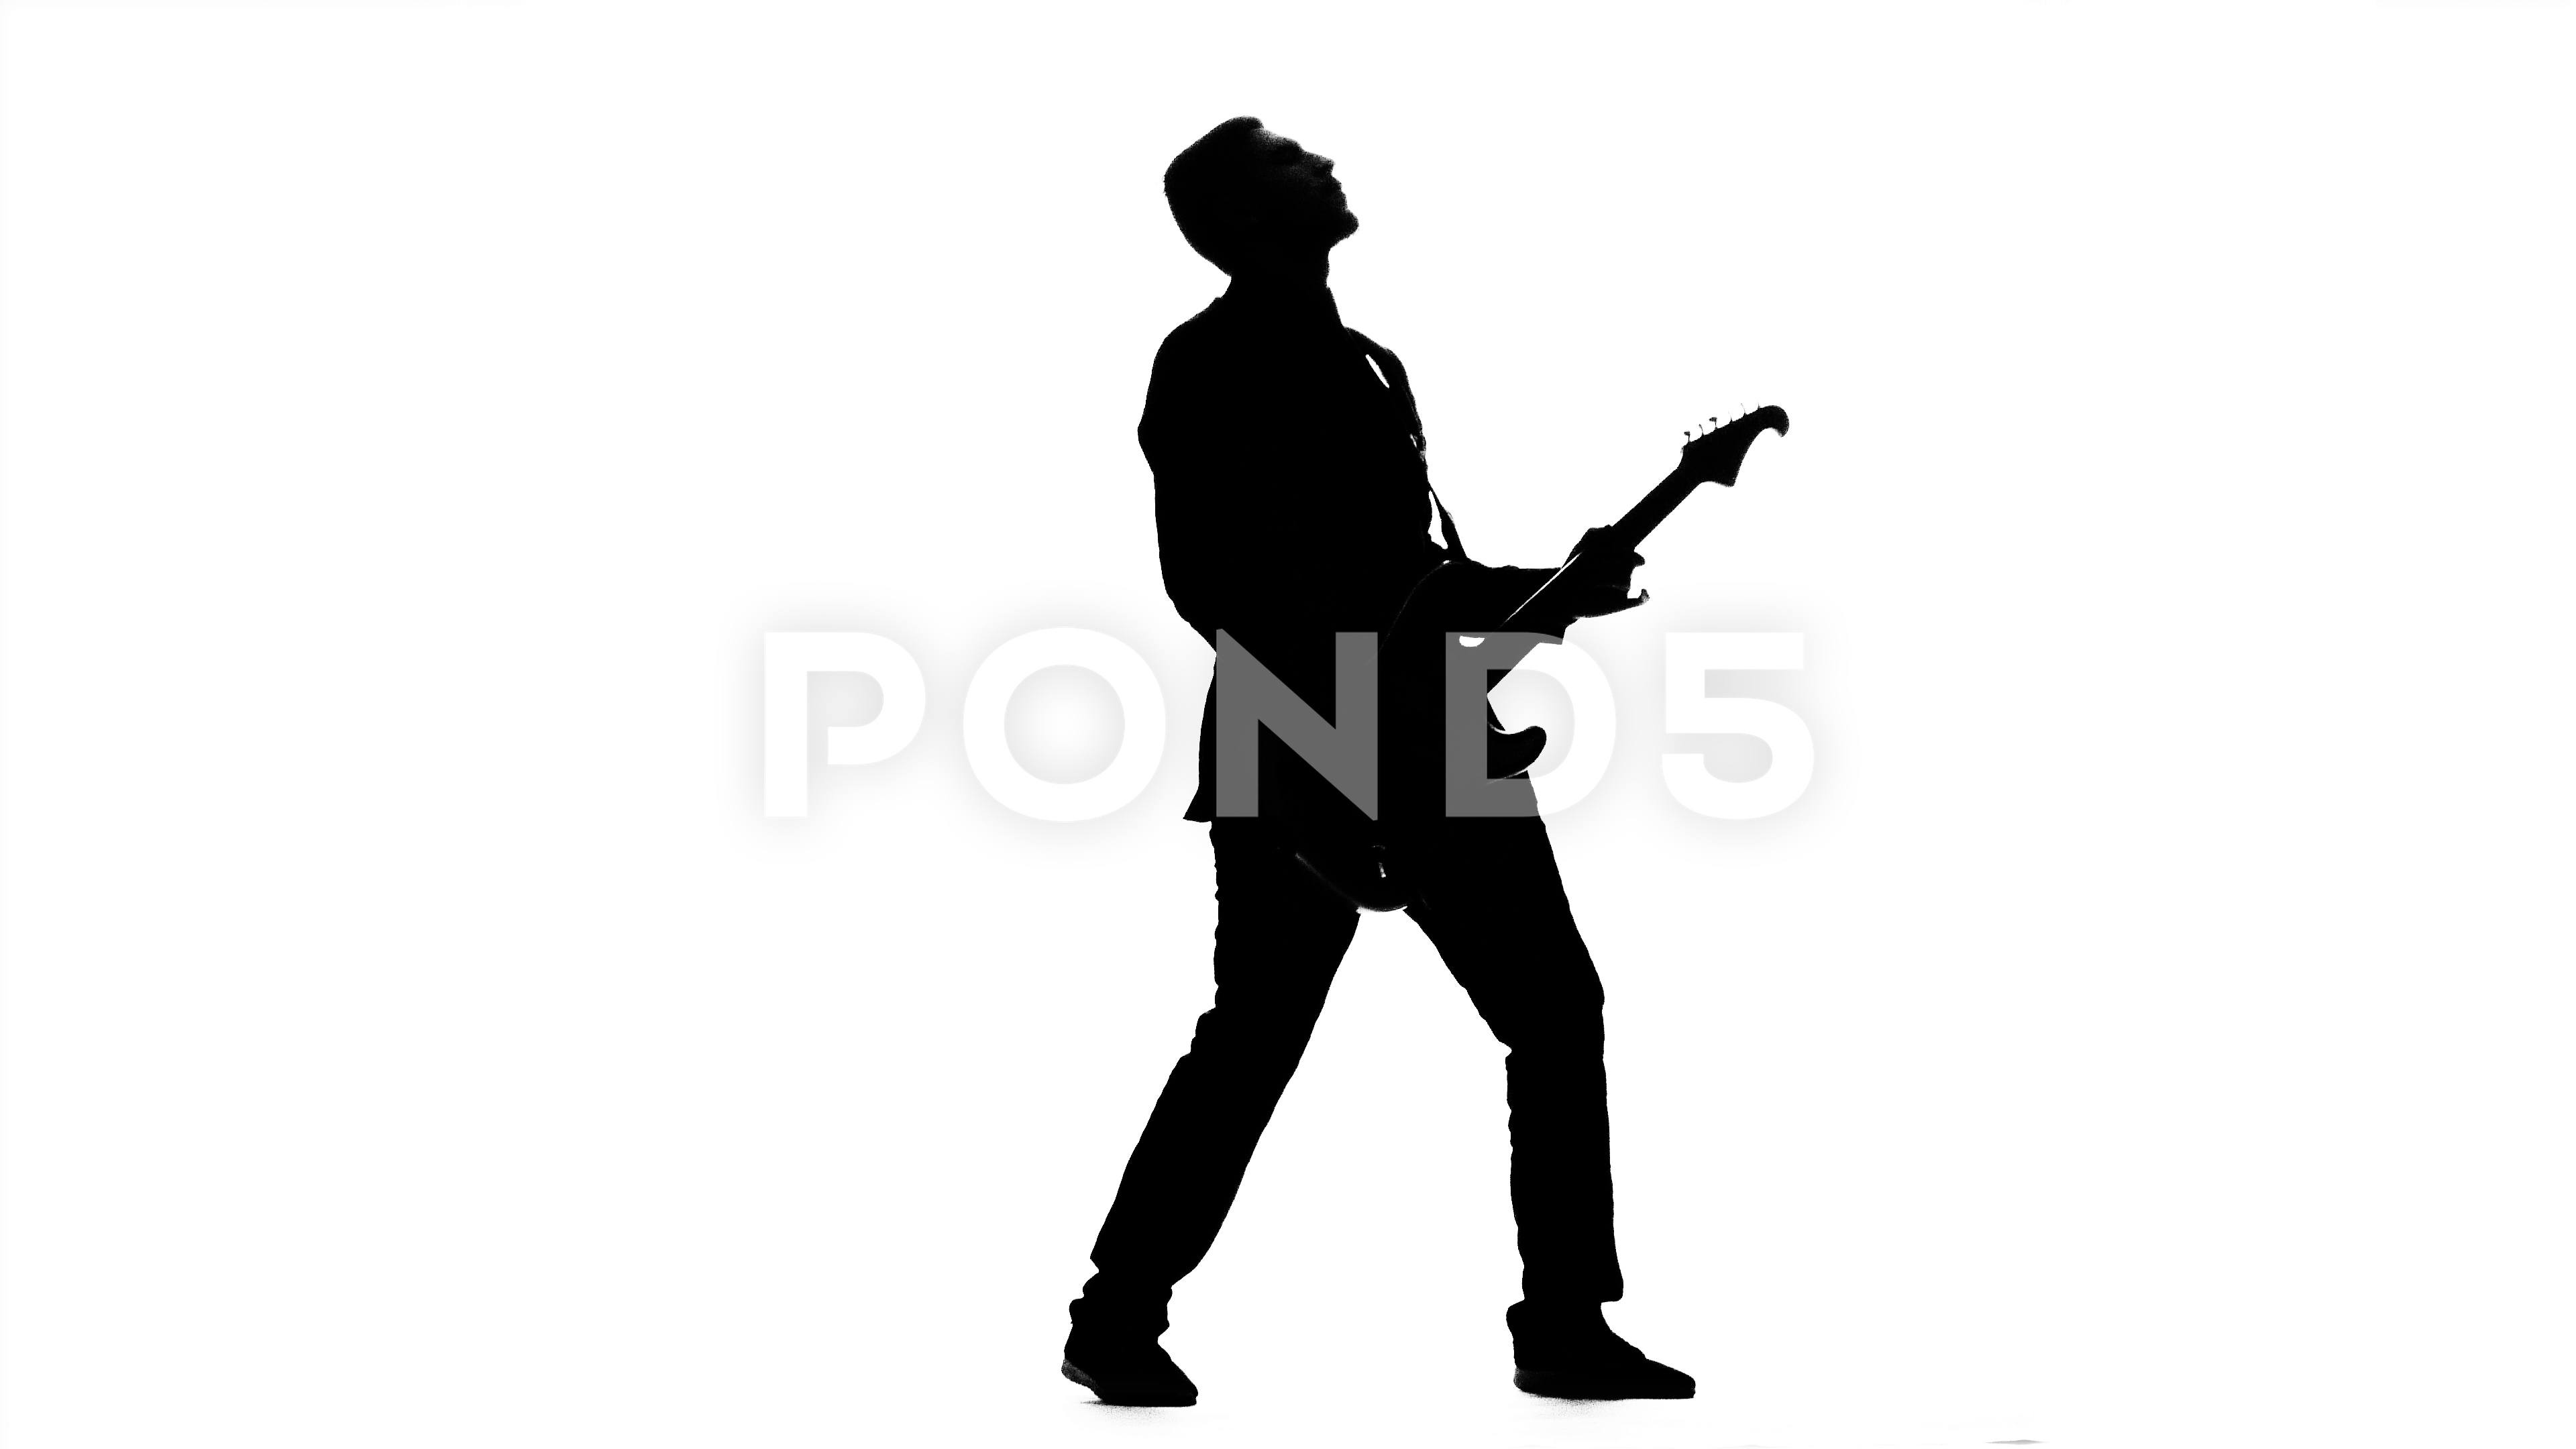 man playing guitar silhouette silhouette of a man playing guitar stock photo guitar playing silhouette man